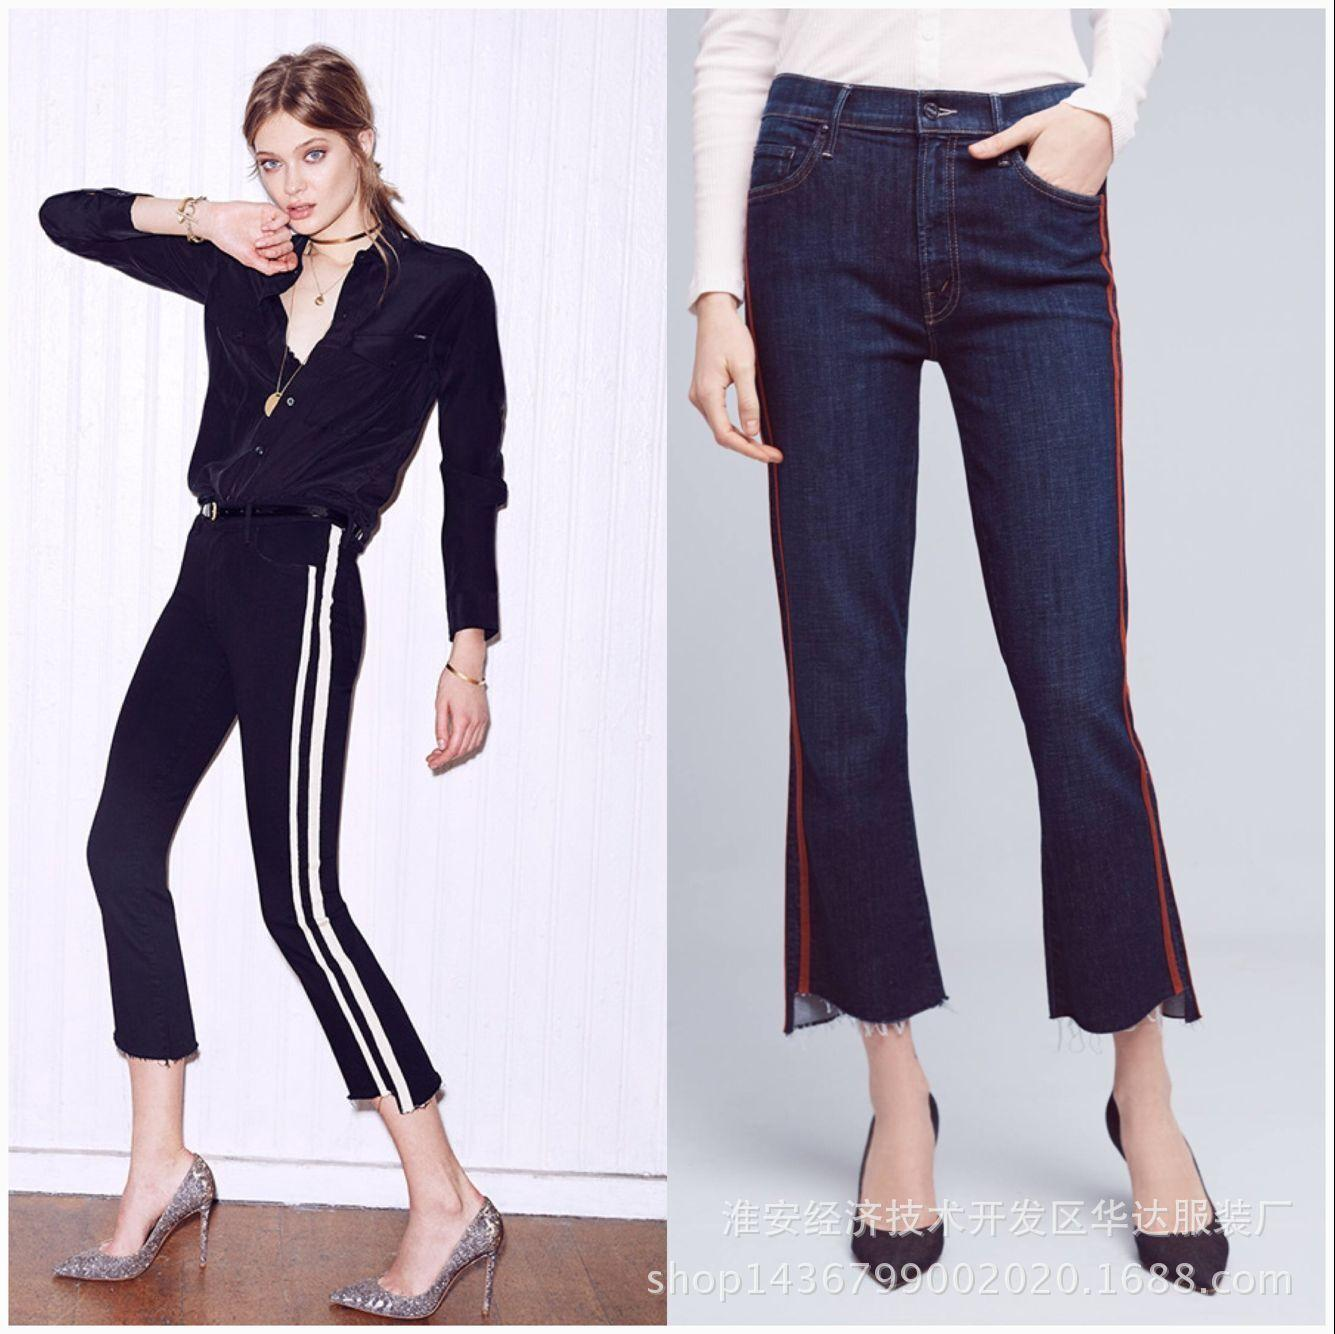 c1e31ee2d9301 2019 Wholesale High Waist Vintage Side Stripe Jeans Women Fashion Little  Flare Pants Mujer Irregular Horns Burr Fashion Skinny Jeans Femme 2017 From  ...